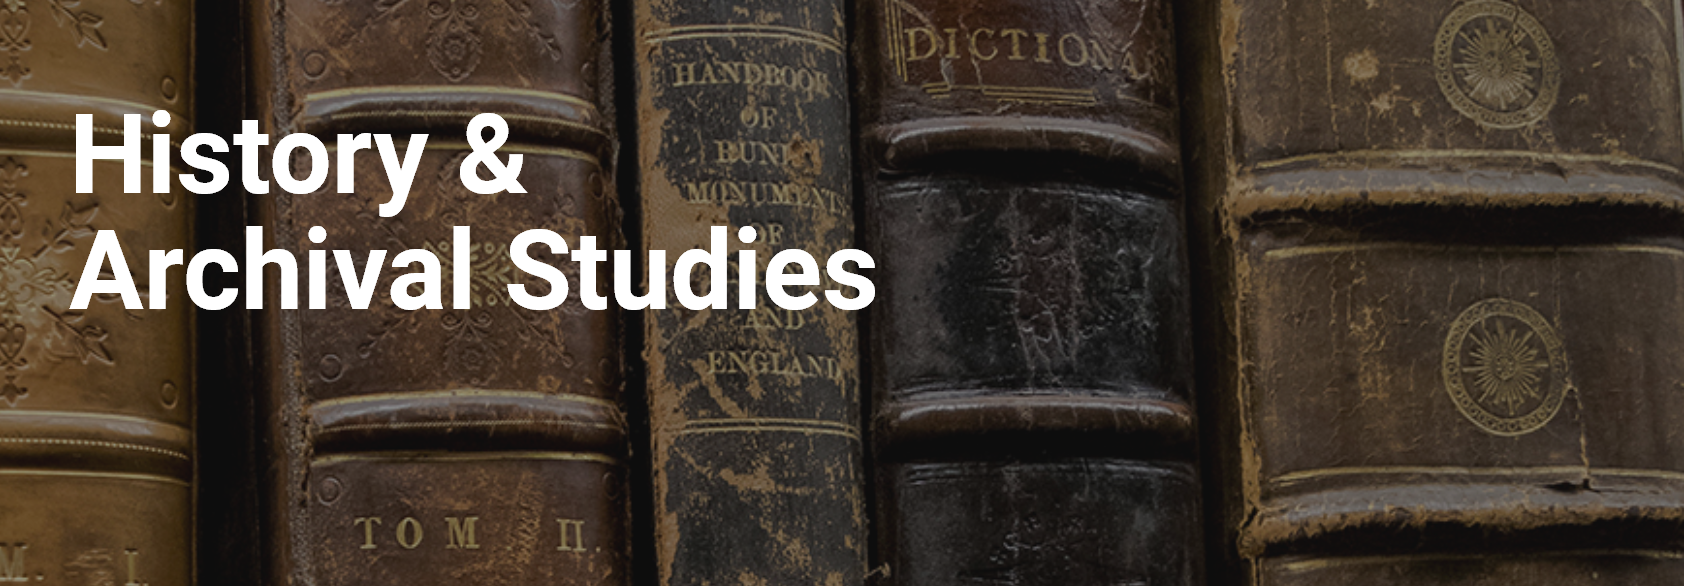 History and Archival Studies